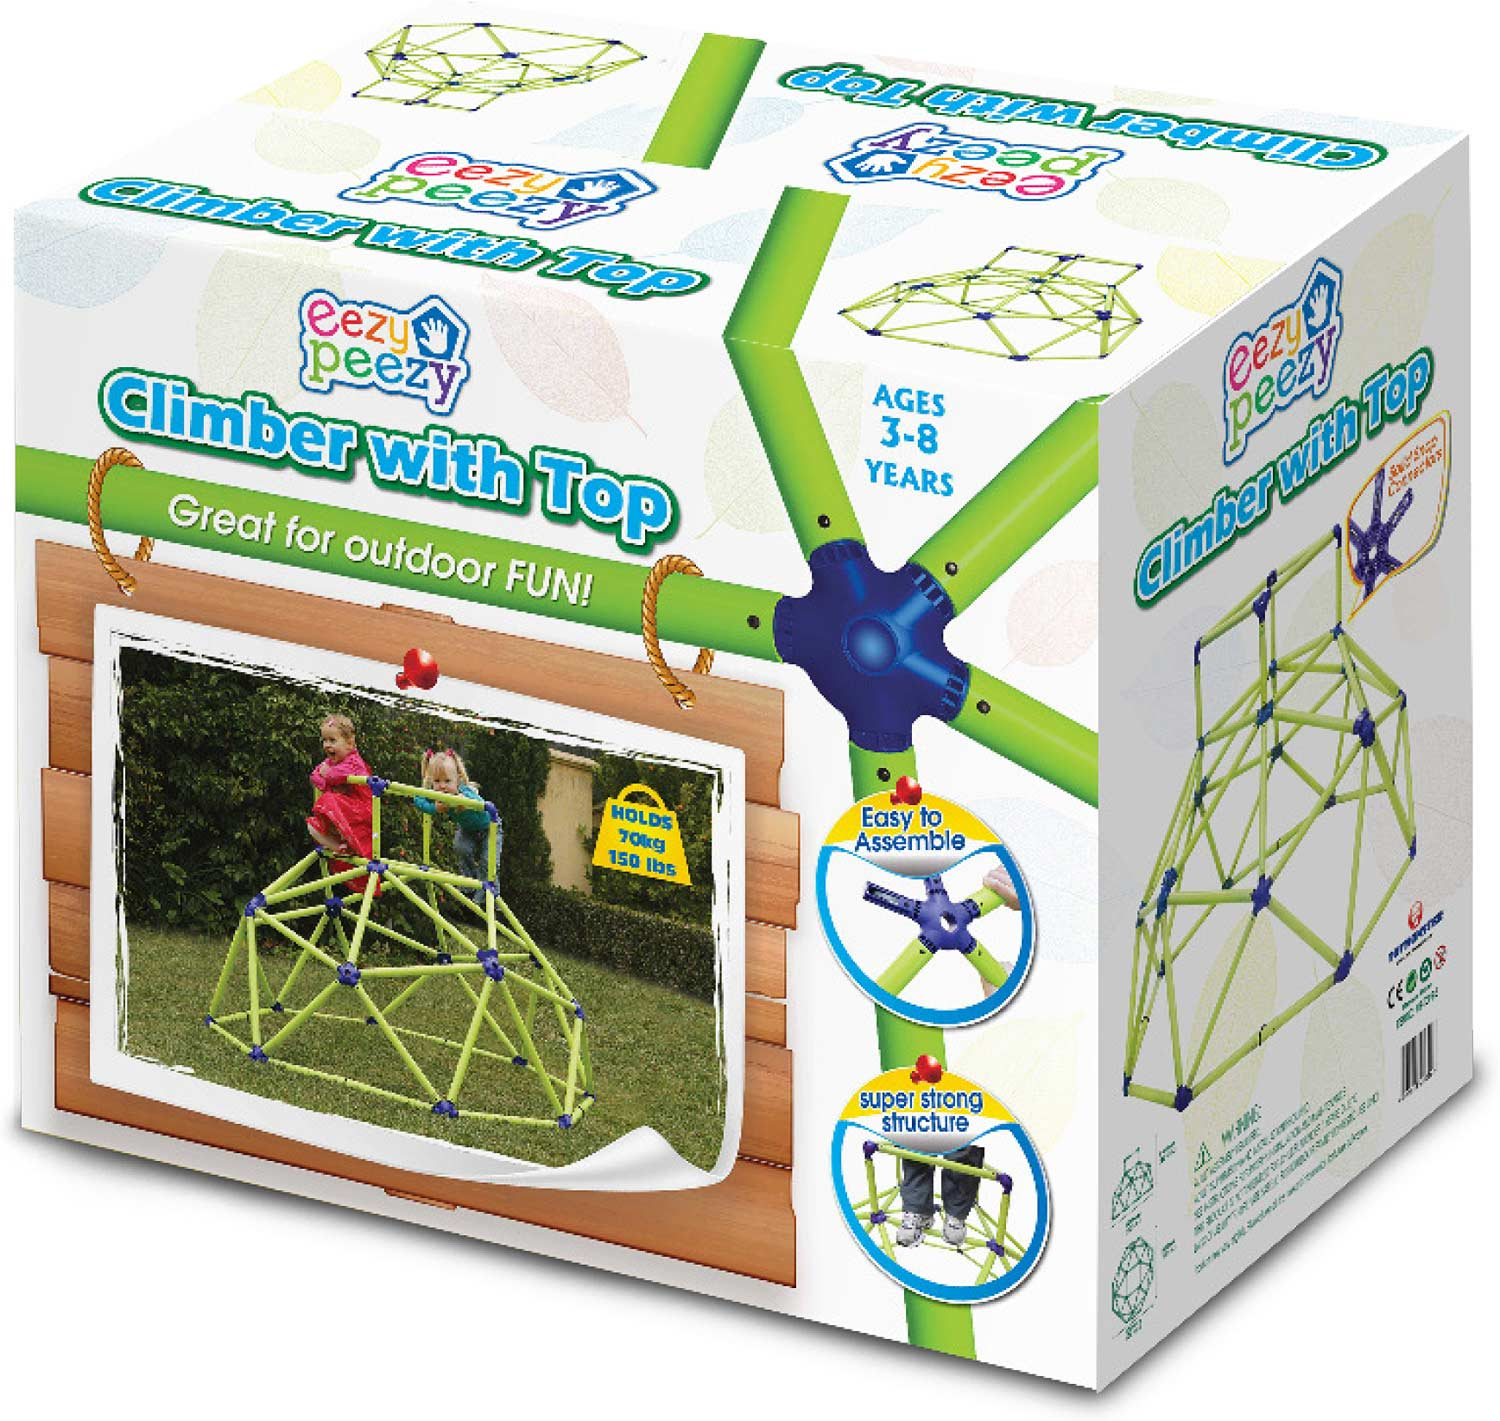 Eezy Peezy Monkey Bars Tower - Green/Blue